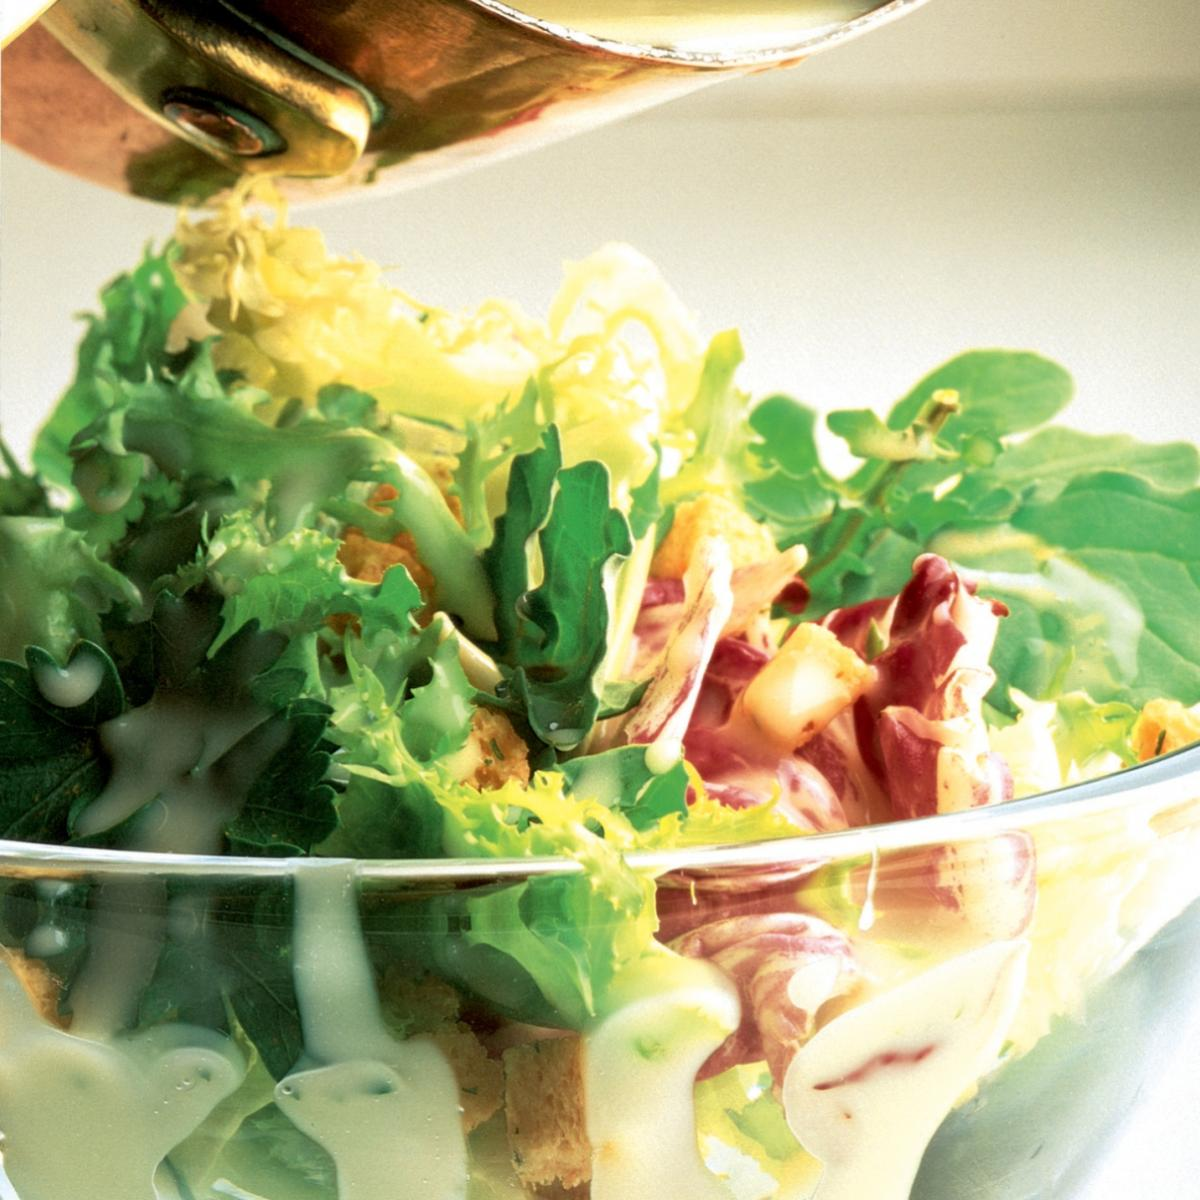 Winter apple cider salad with melted camembert dressing